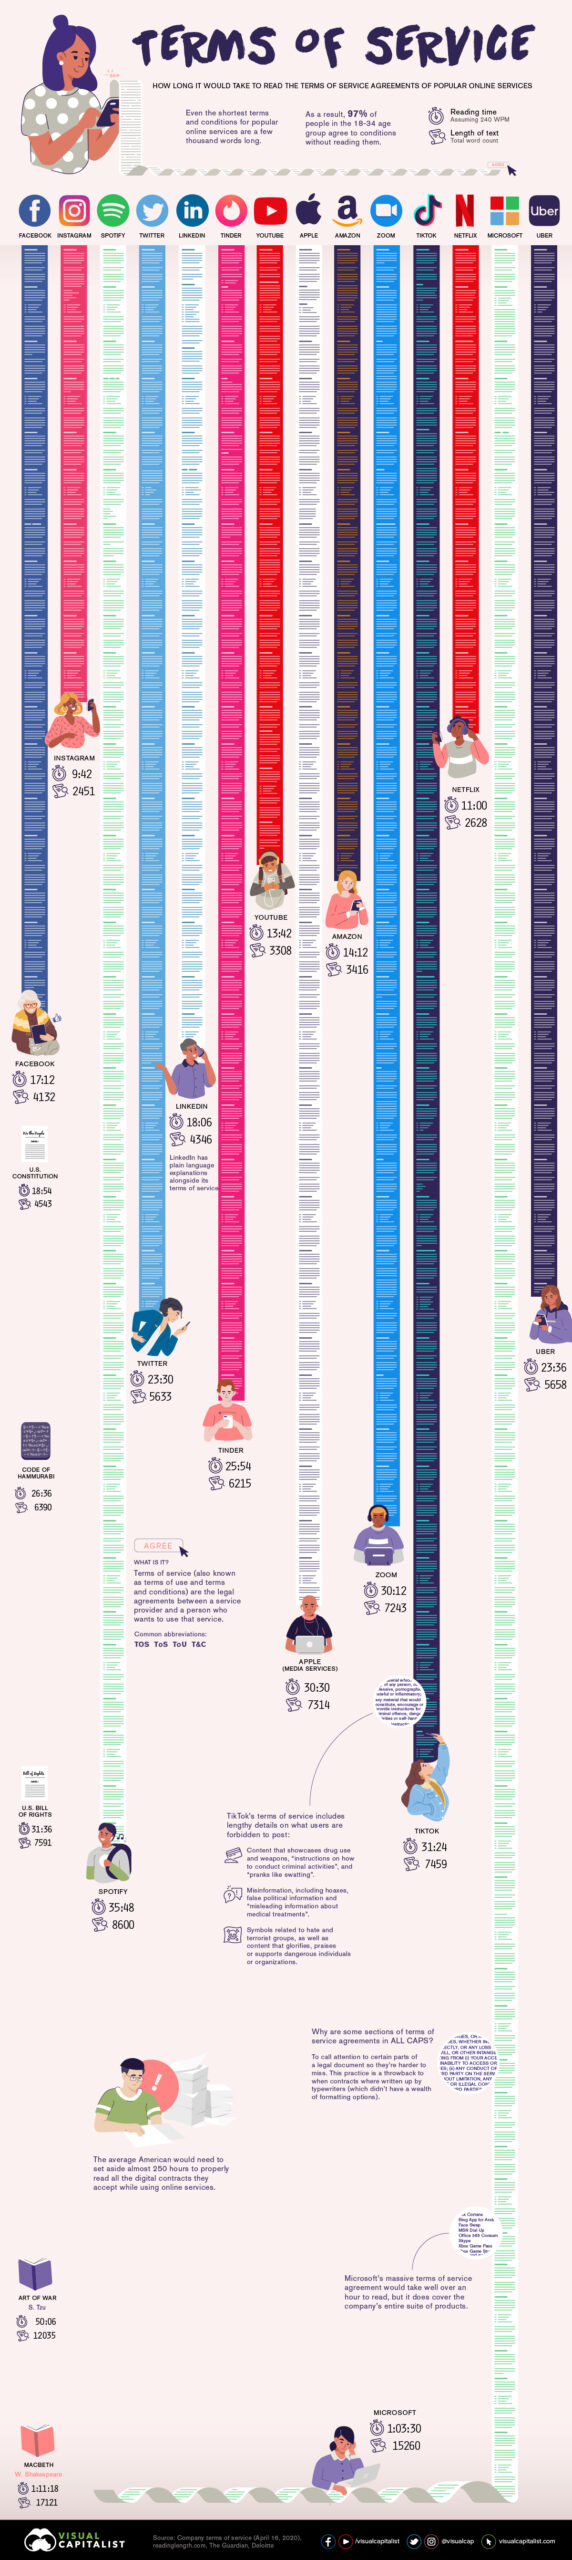 Infographic: Terms Of Service Length